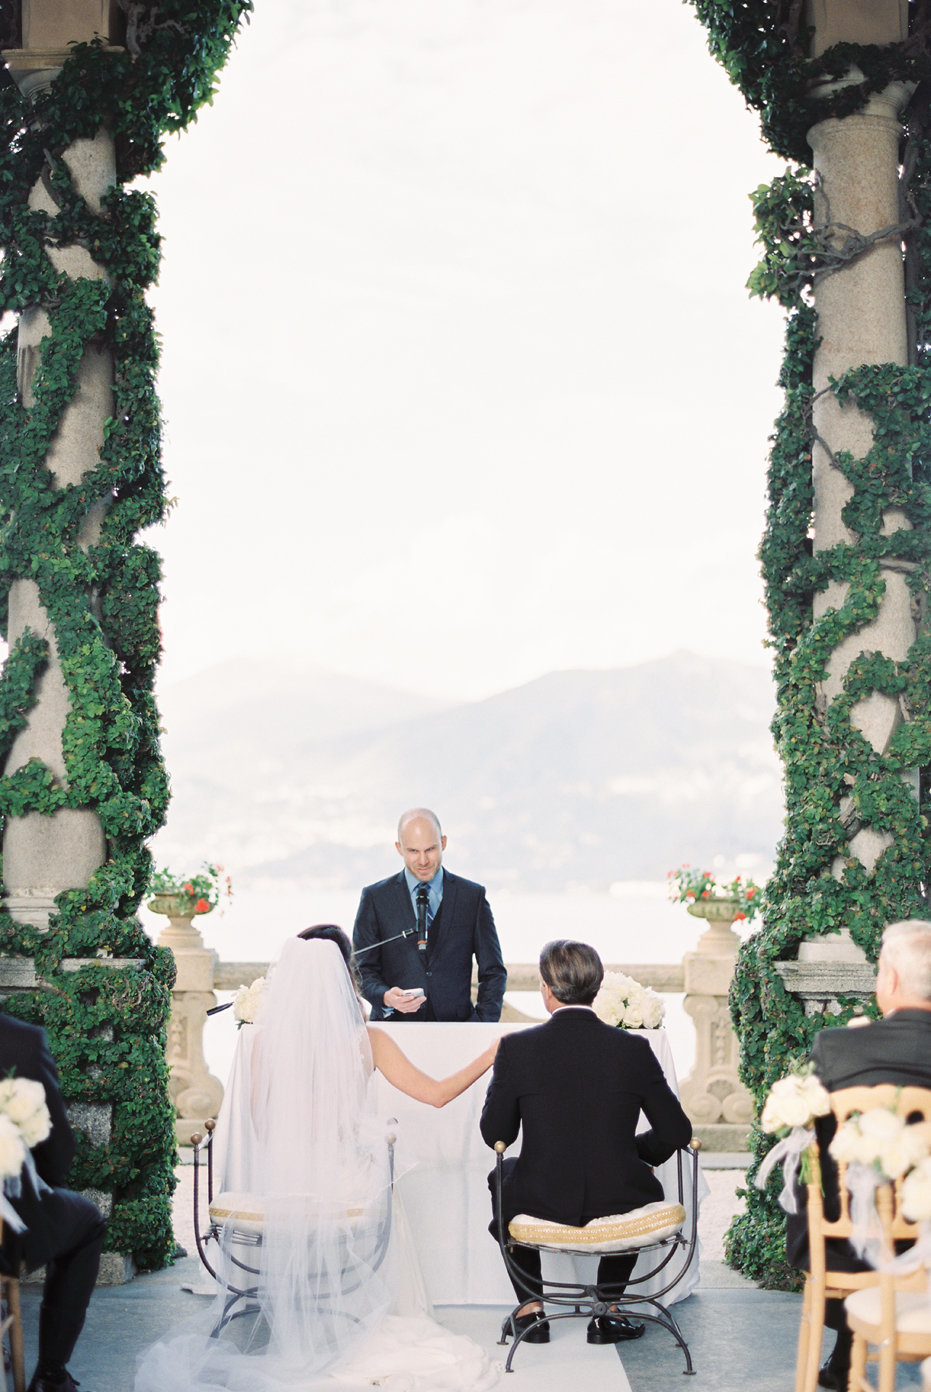 lake_como_italy_villa_balbianello_destination_wedding_melanie_gabrielle_053